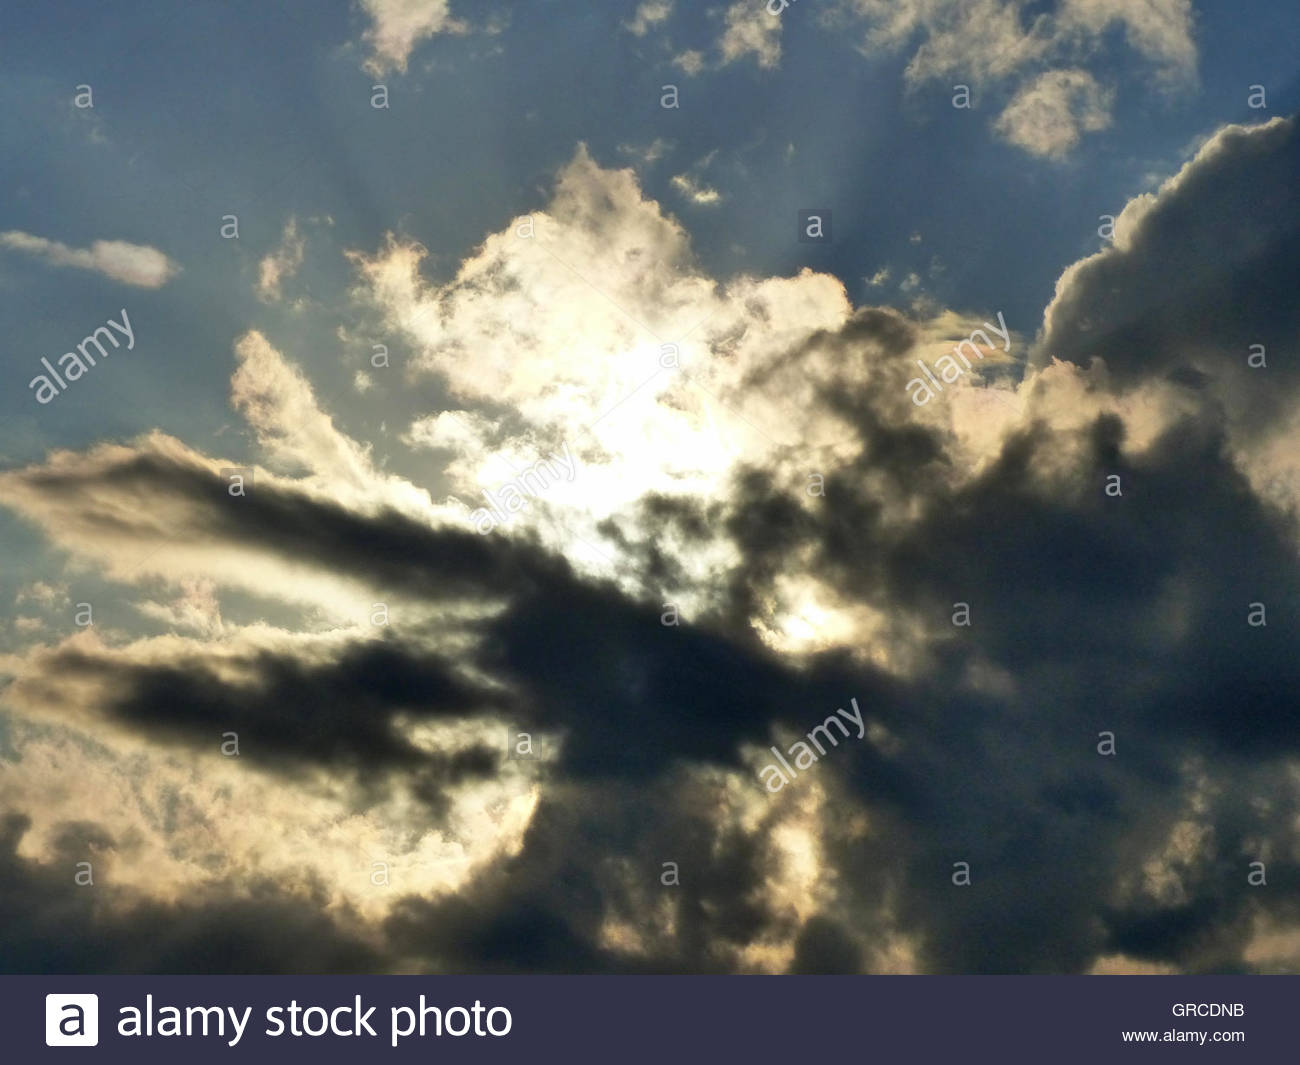 Dark Clouds, And Behind Of Them The Sun Shines - Stock Image